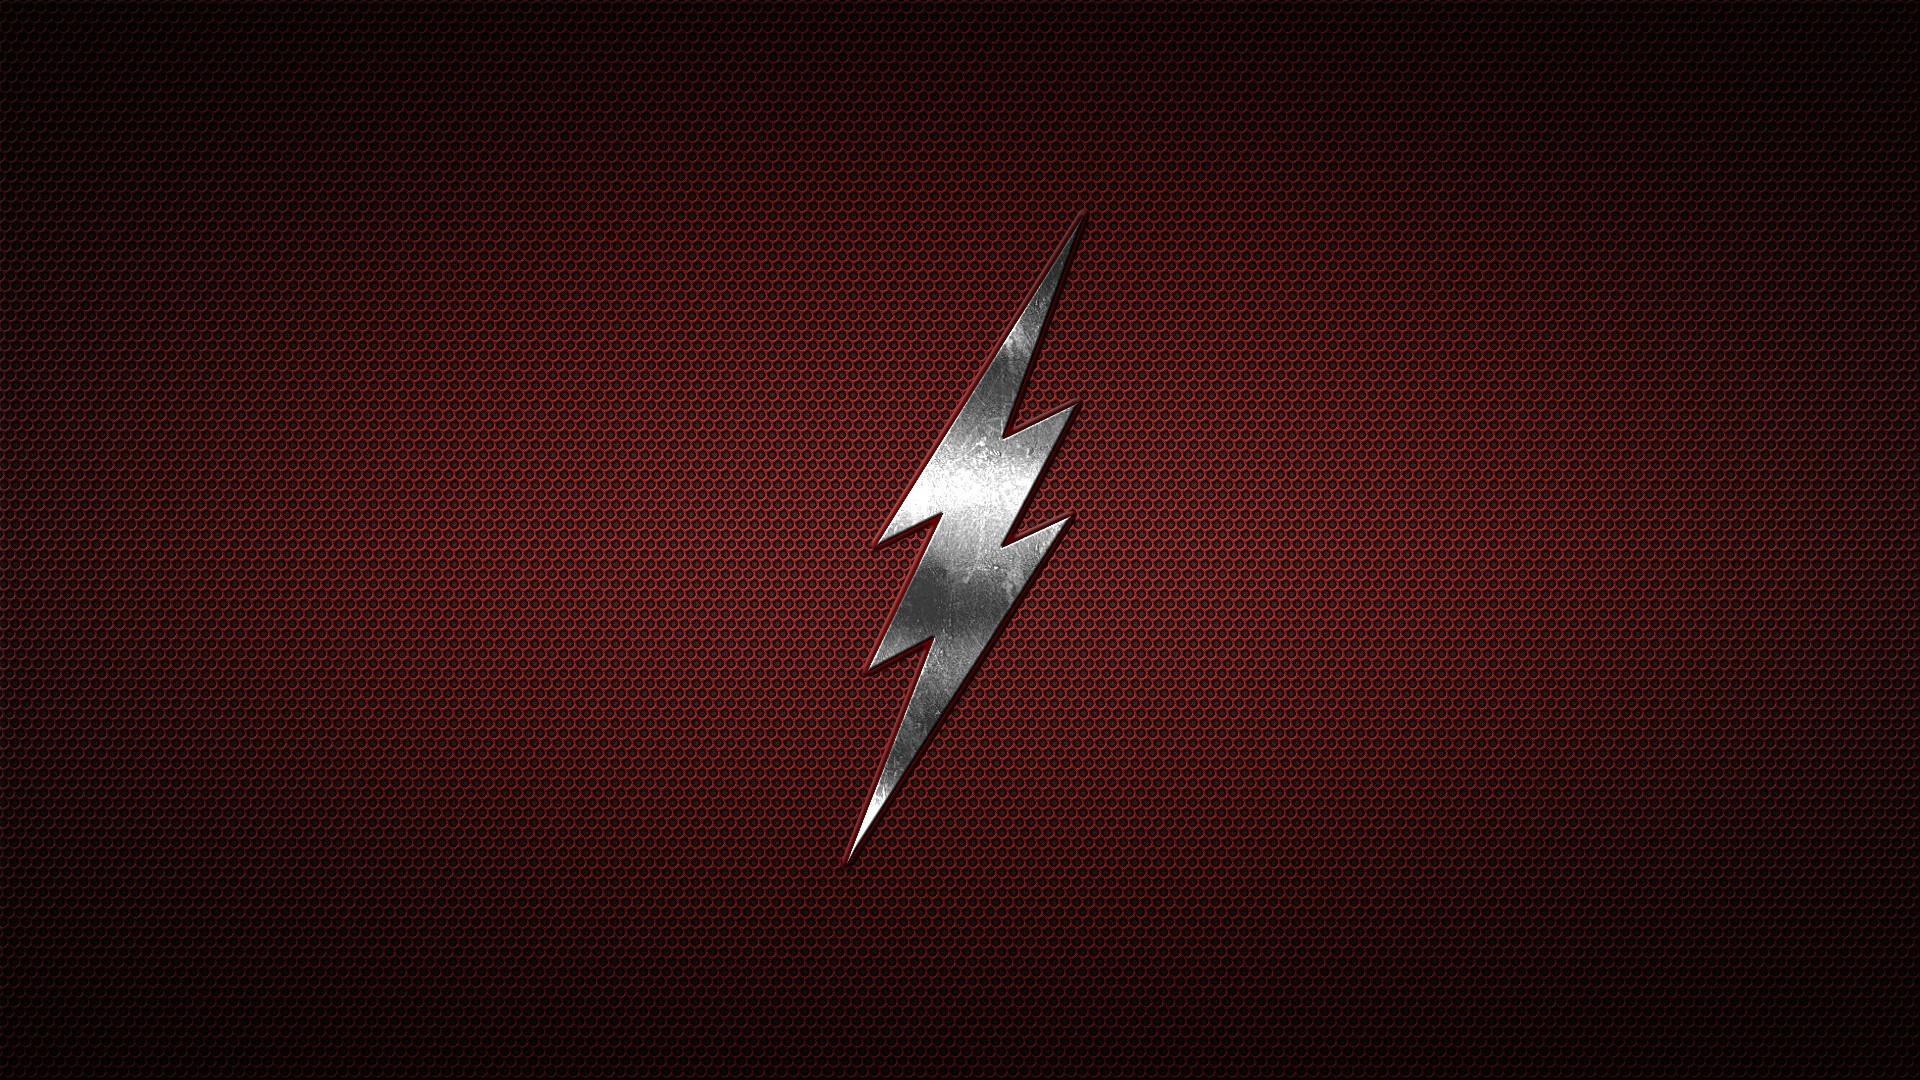 Download The Flash Minimalism HD 4k Wallpapers In 2048×1152 Screen .